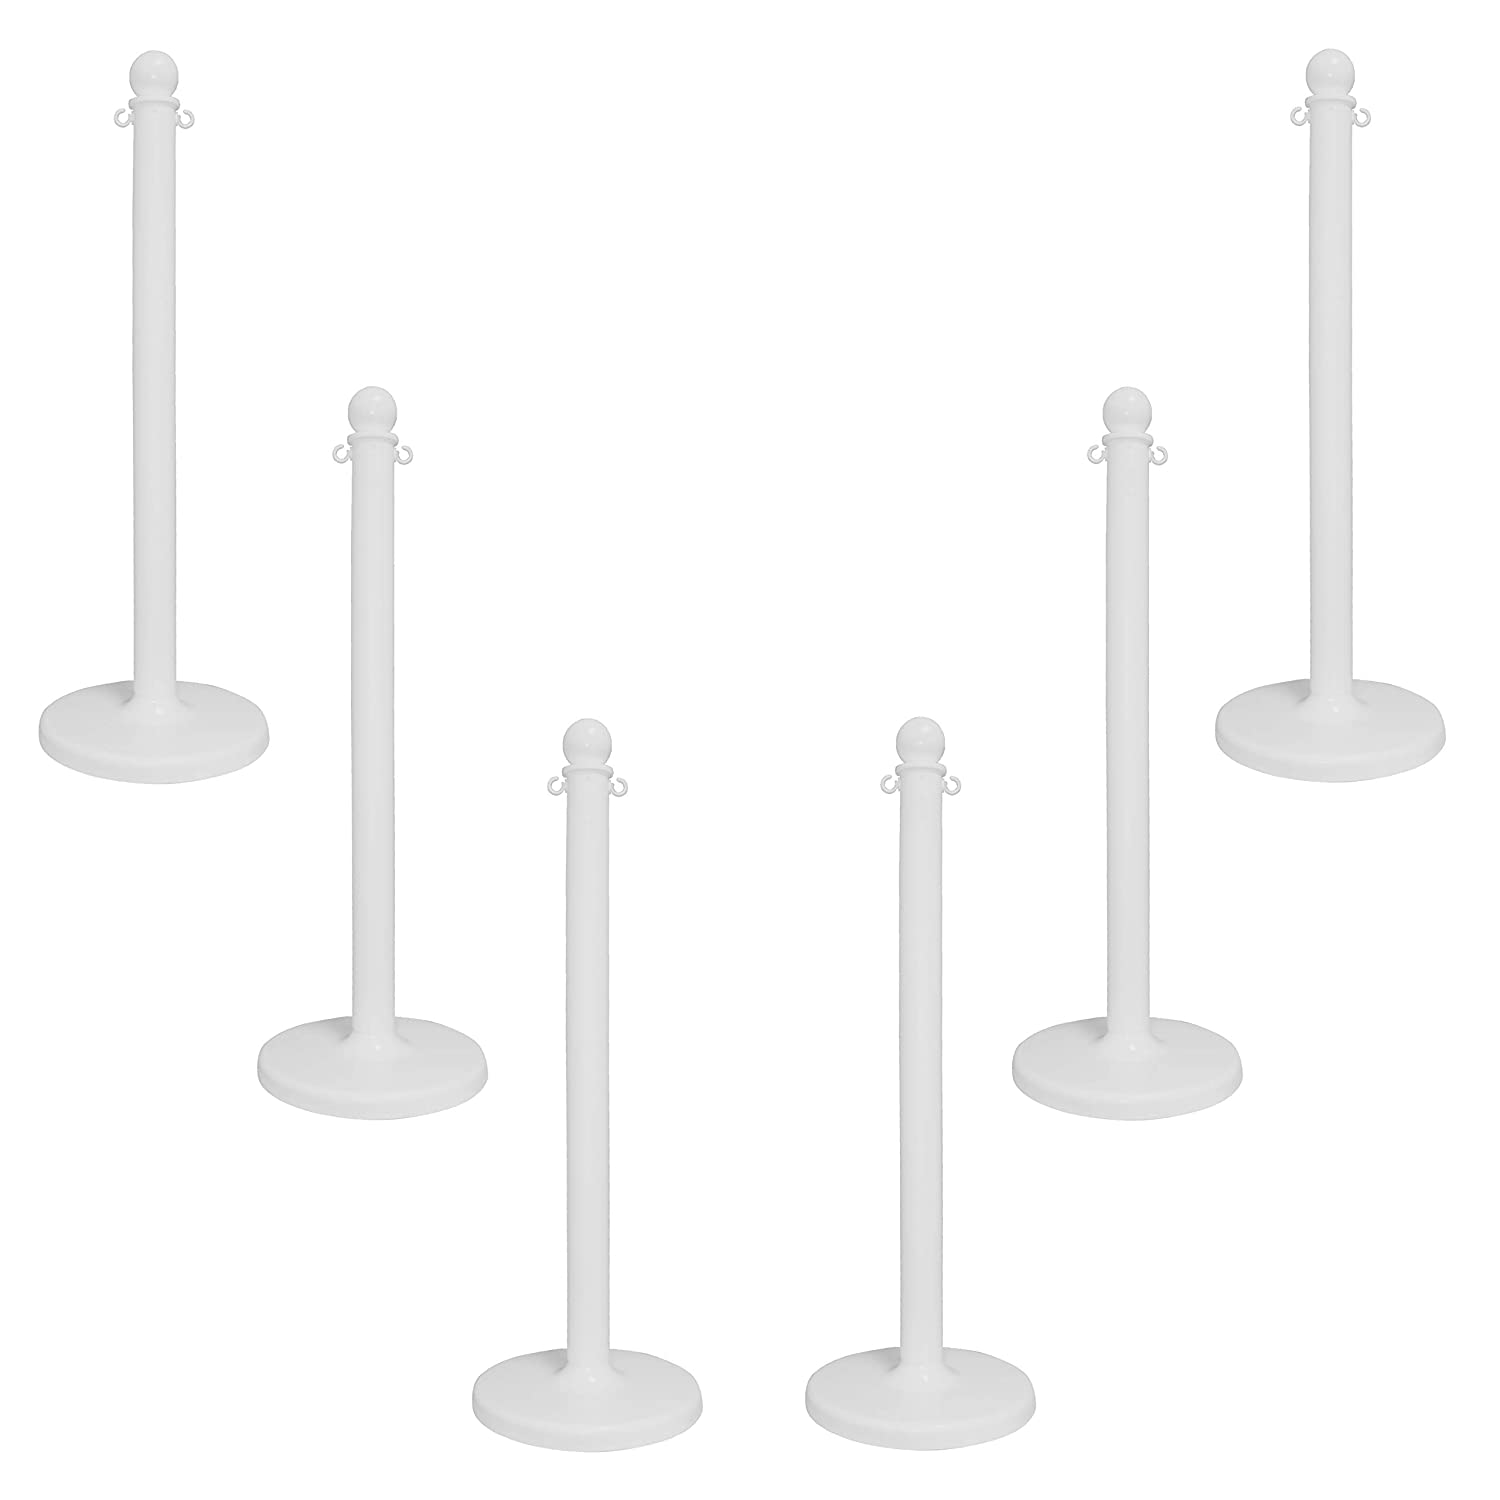 Chain 96401-6 White Stanchion Pack of 6 2.5 link x 40 Overall Height 2.5 link x 40 Overall Height Mr